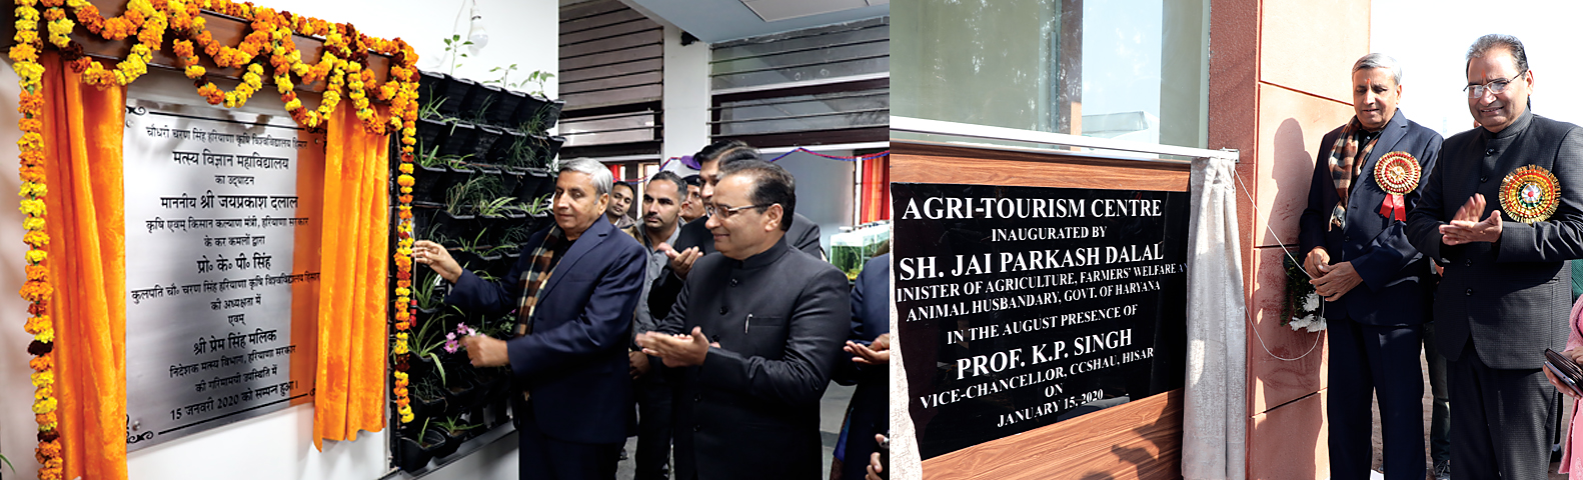 Inauguration of Agri-Tourism Centre